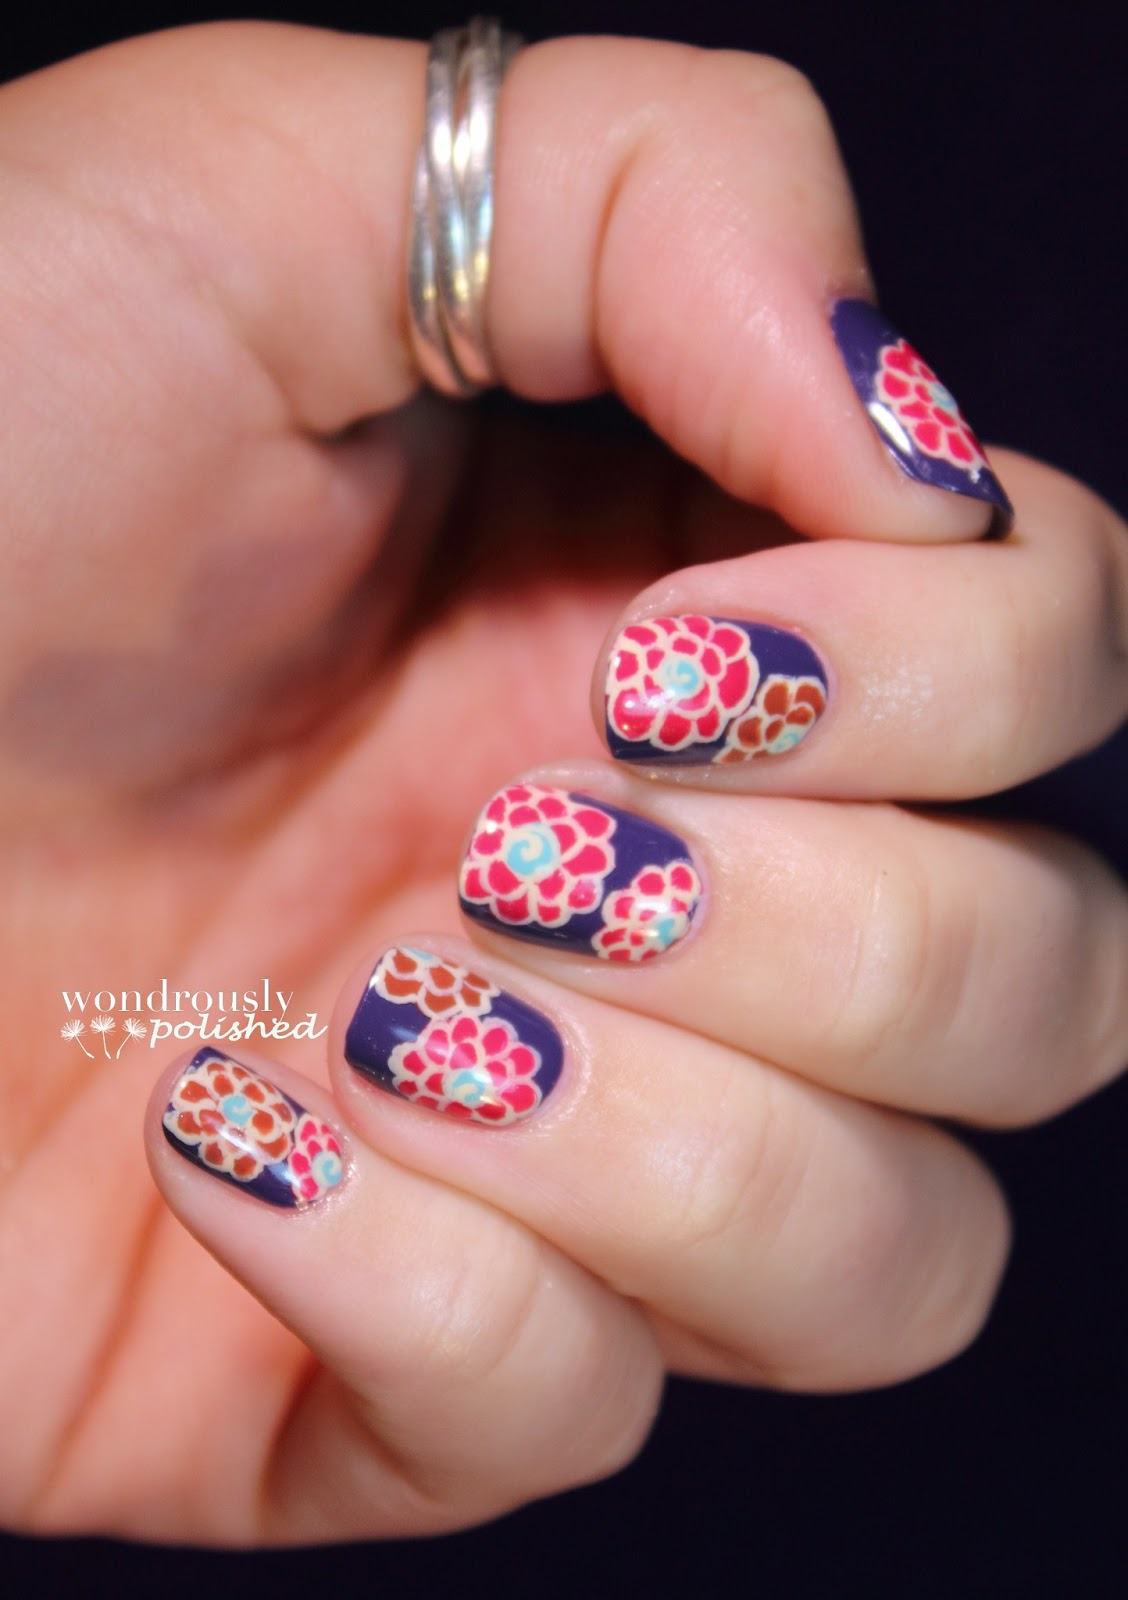 Wondrously Polished February Nail Art Challenge: Wondrously Polished: A Green Thumb Equivalent